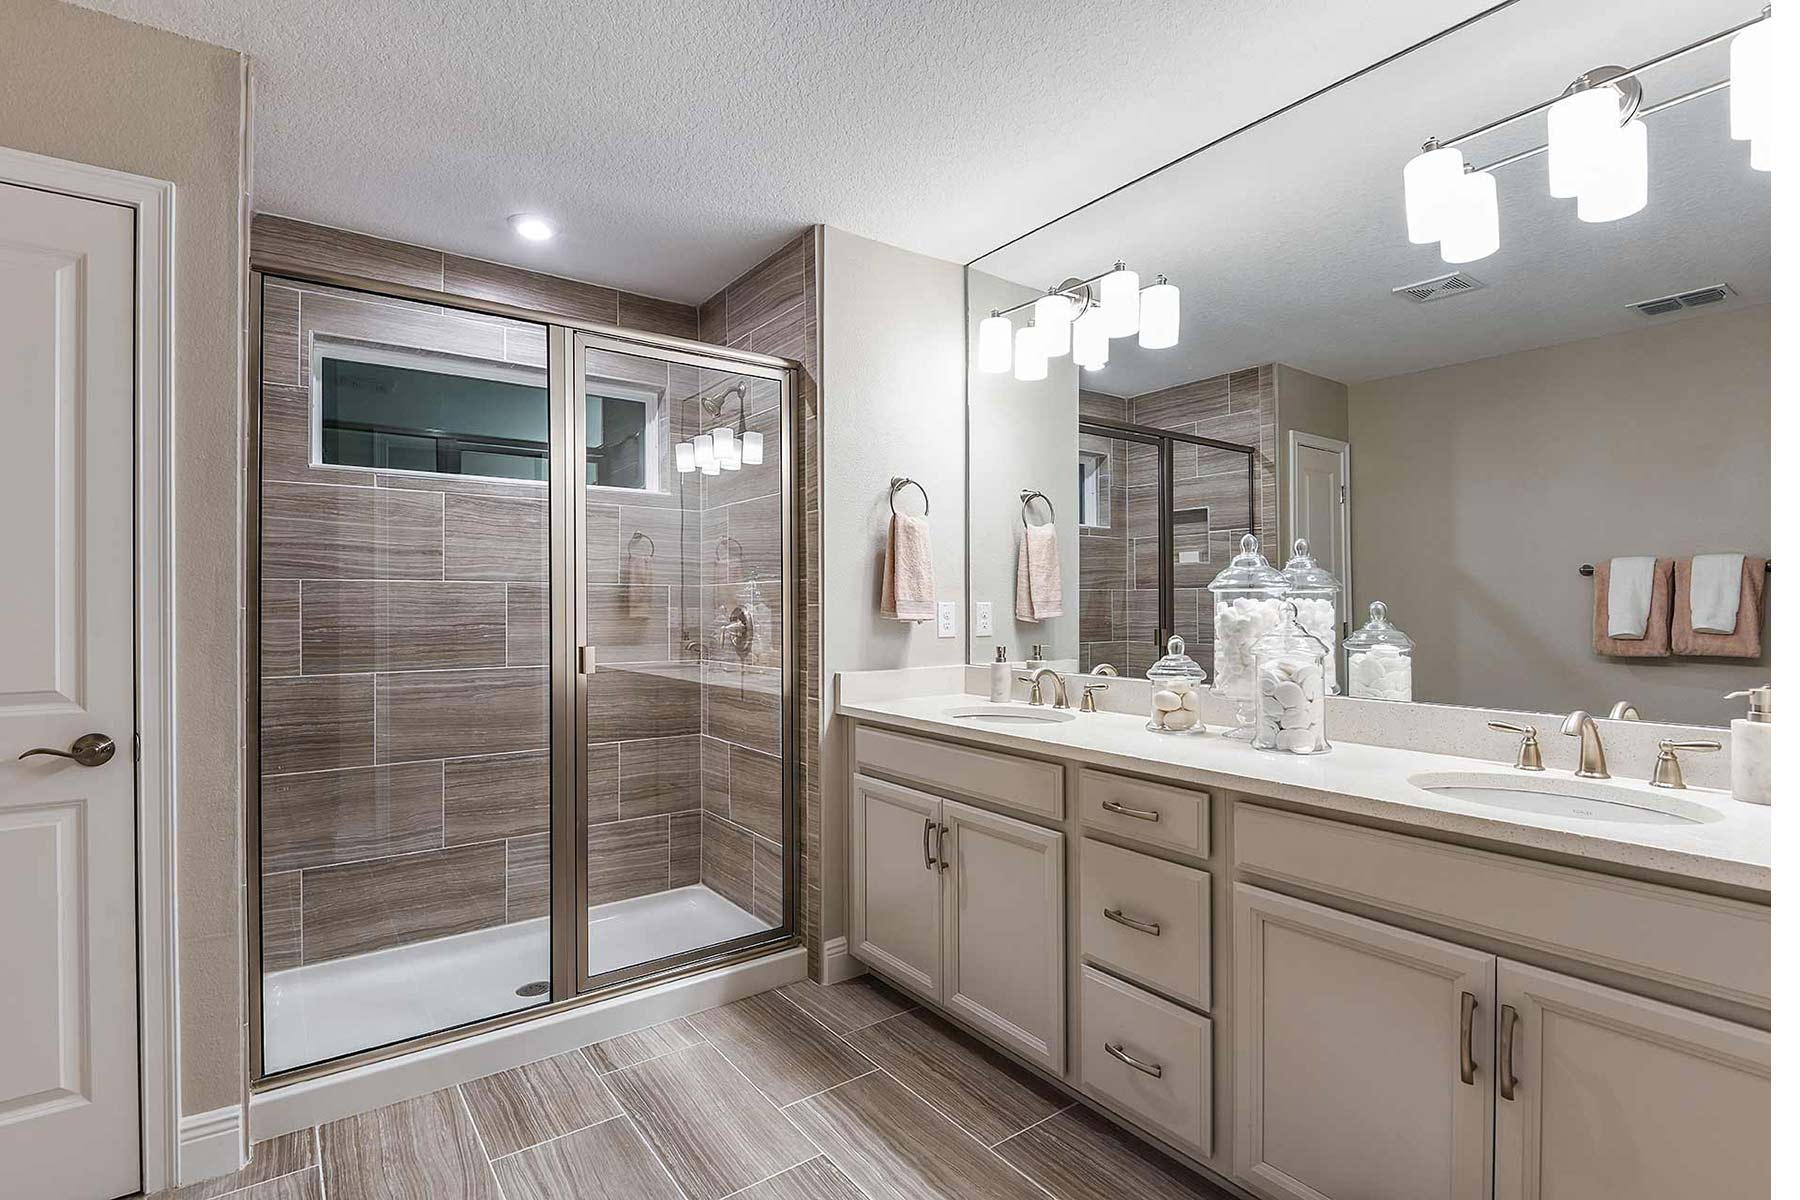 Sebring Plan Bathroom_Master Bath at Avea Pointe in Lutz Florida by Mattamy Homes